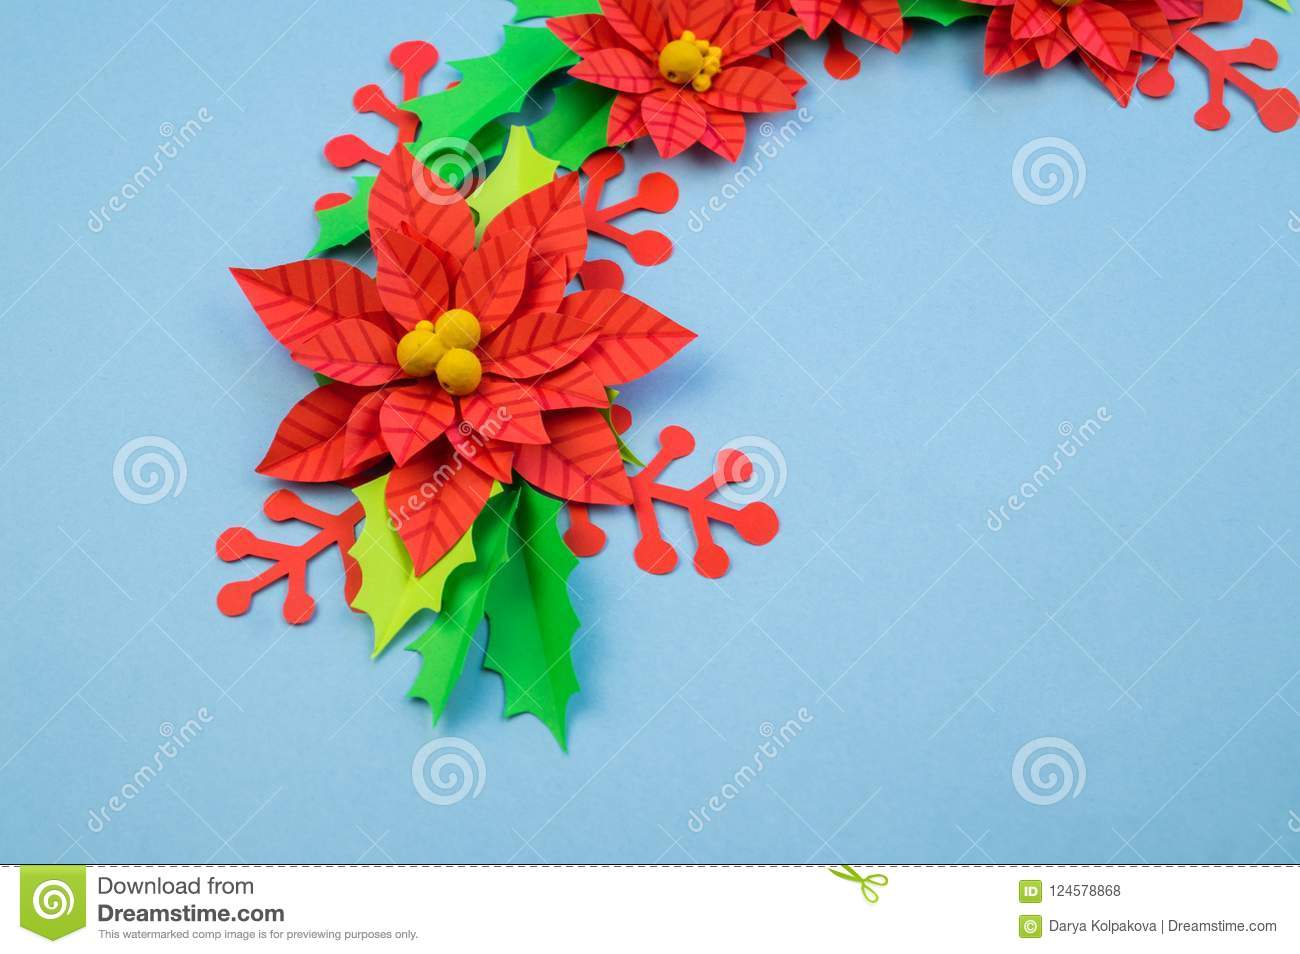 Christmas Wreath Of Paper Flowers Poinsettia Stock Photo Image Of